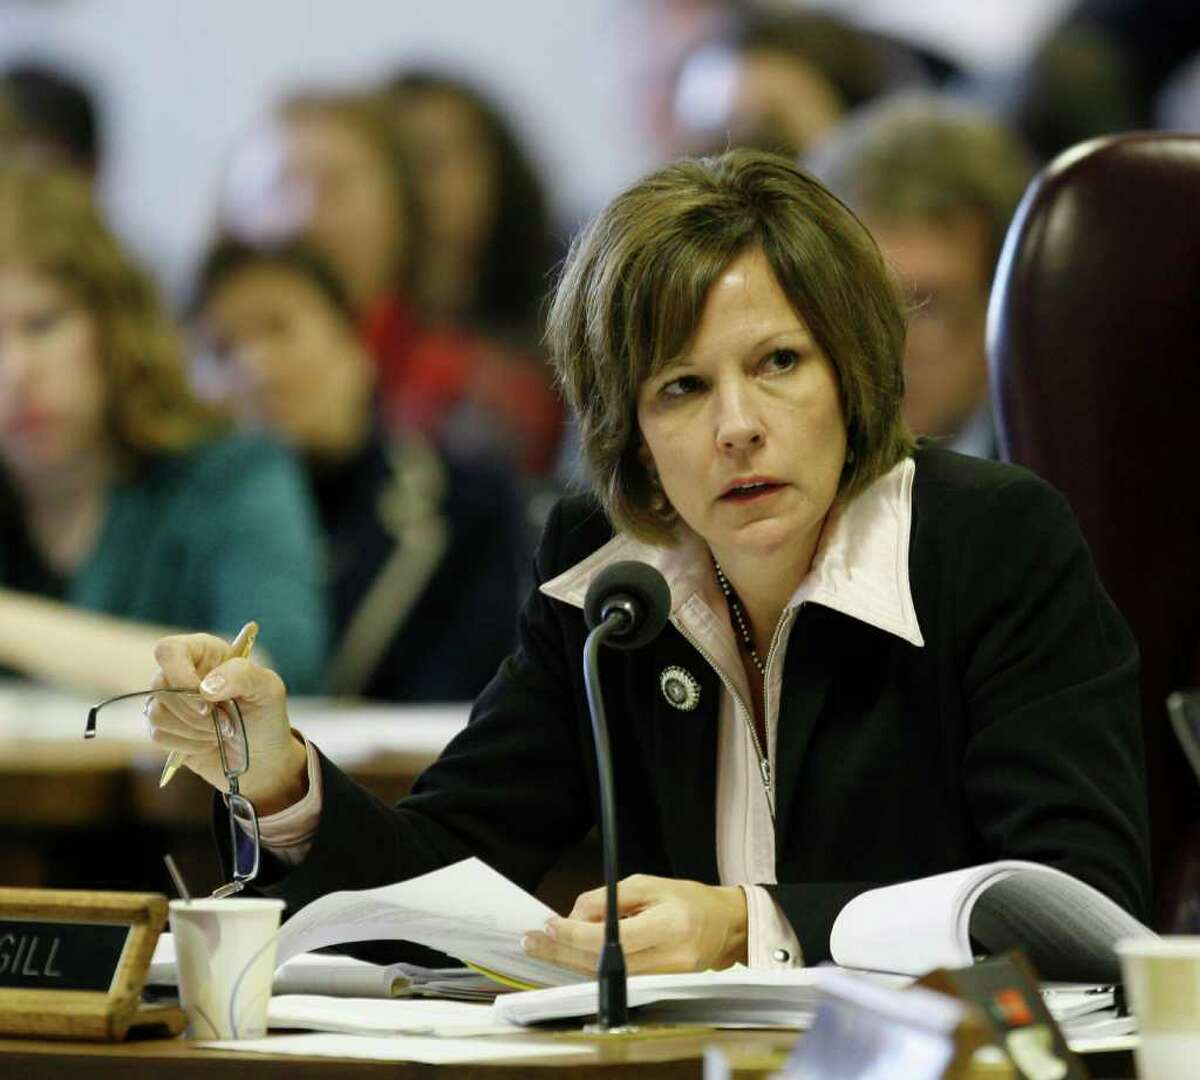 Barbara Cargill will lead her first meeting as education board chairwoman this week.